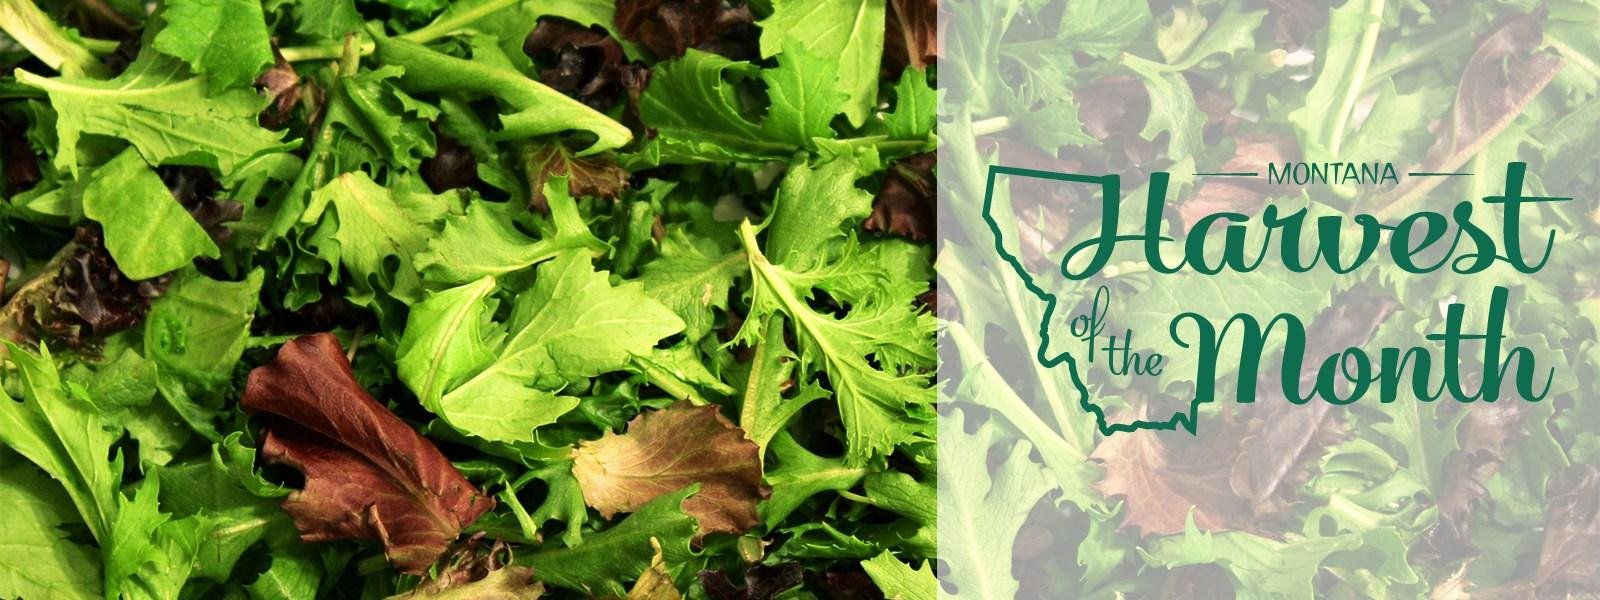 Photo of leafy greens with Montana Harvest of the Month logo in green